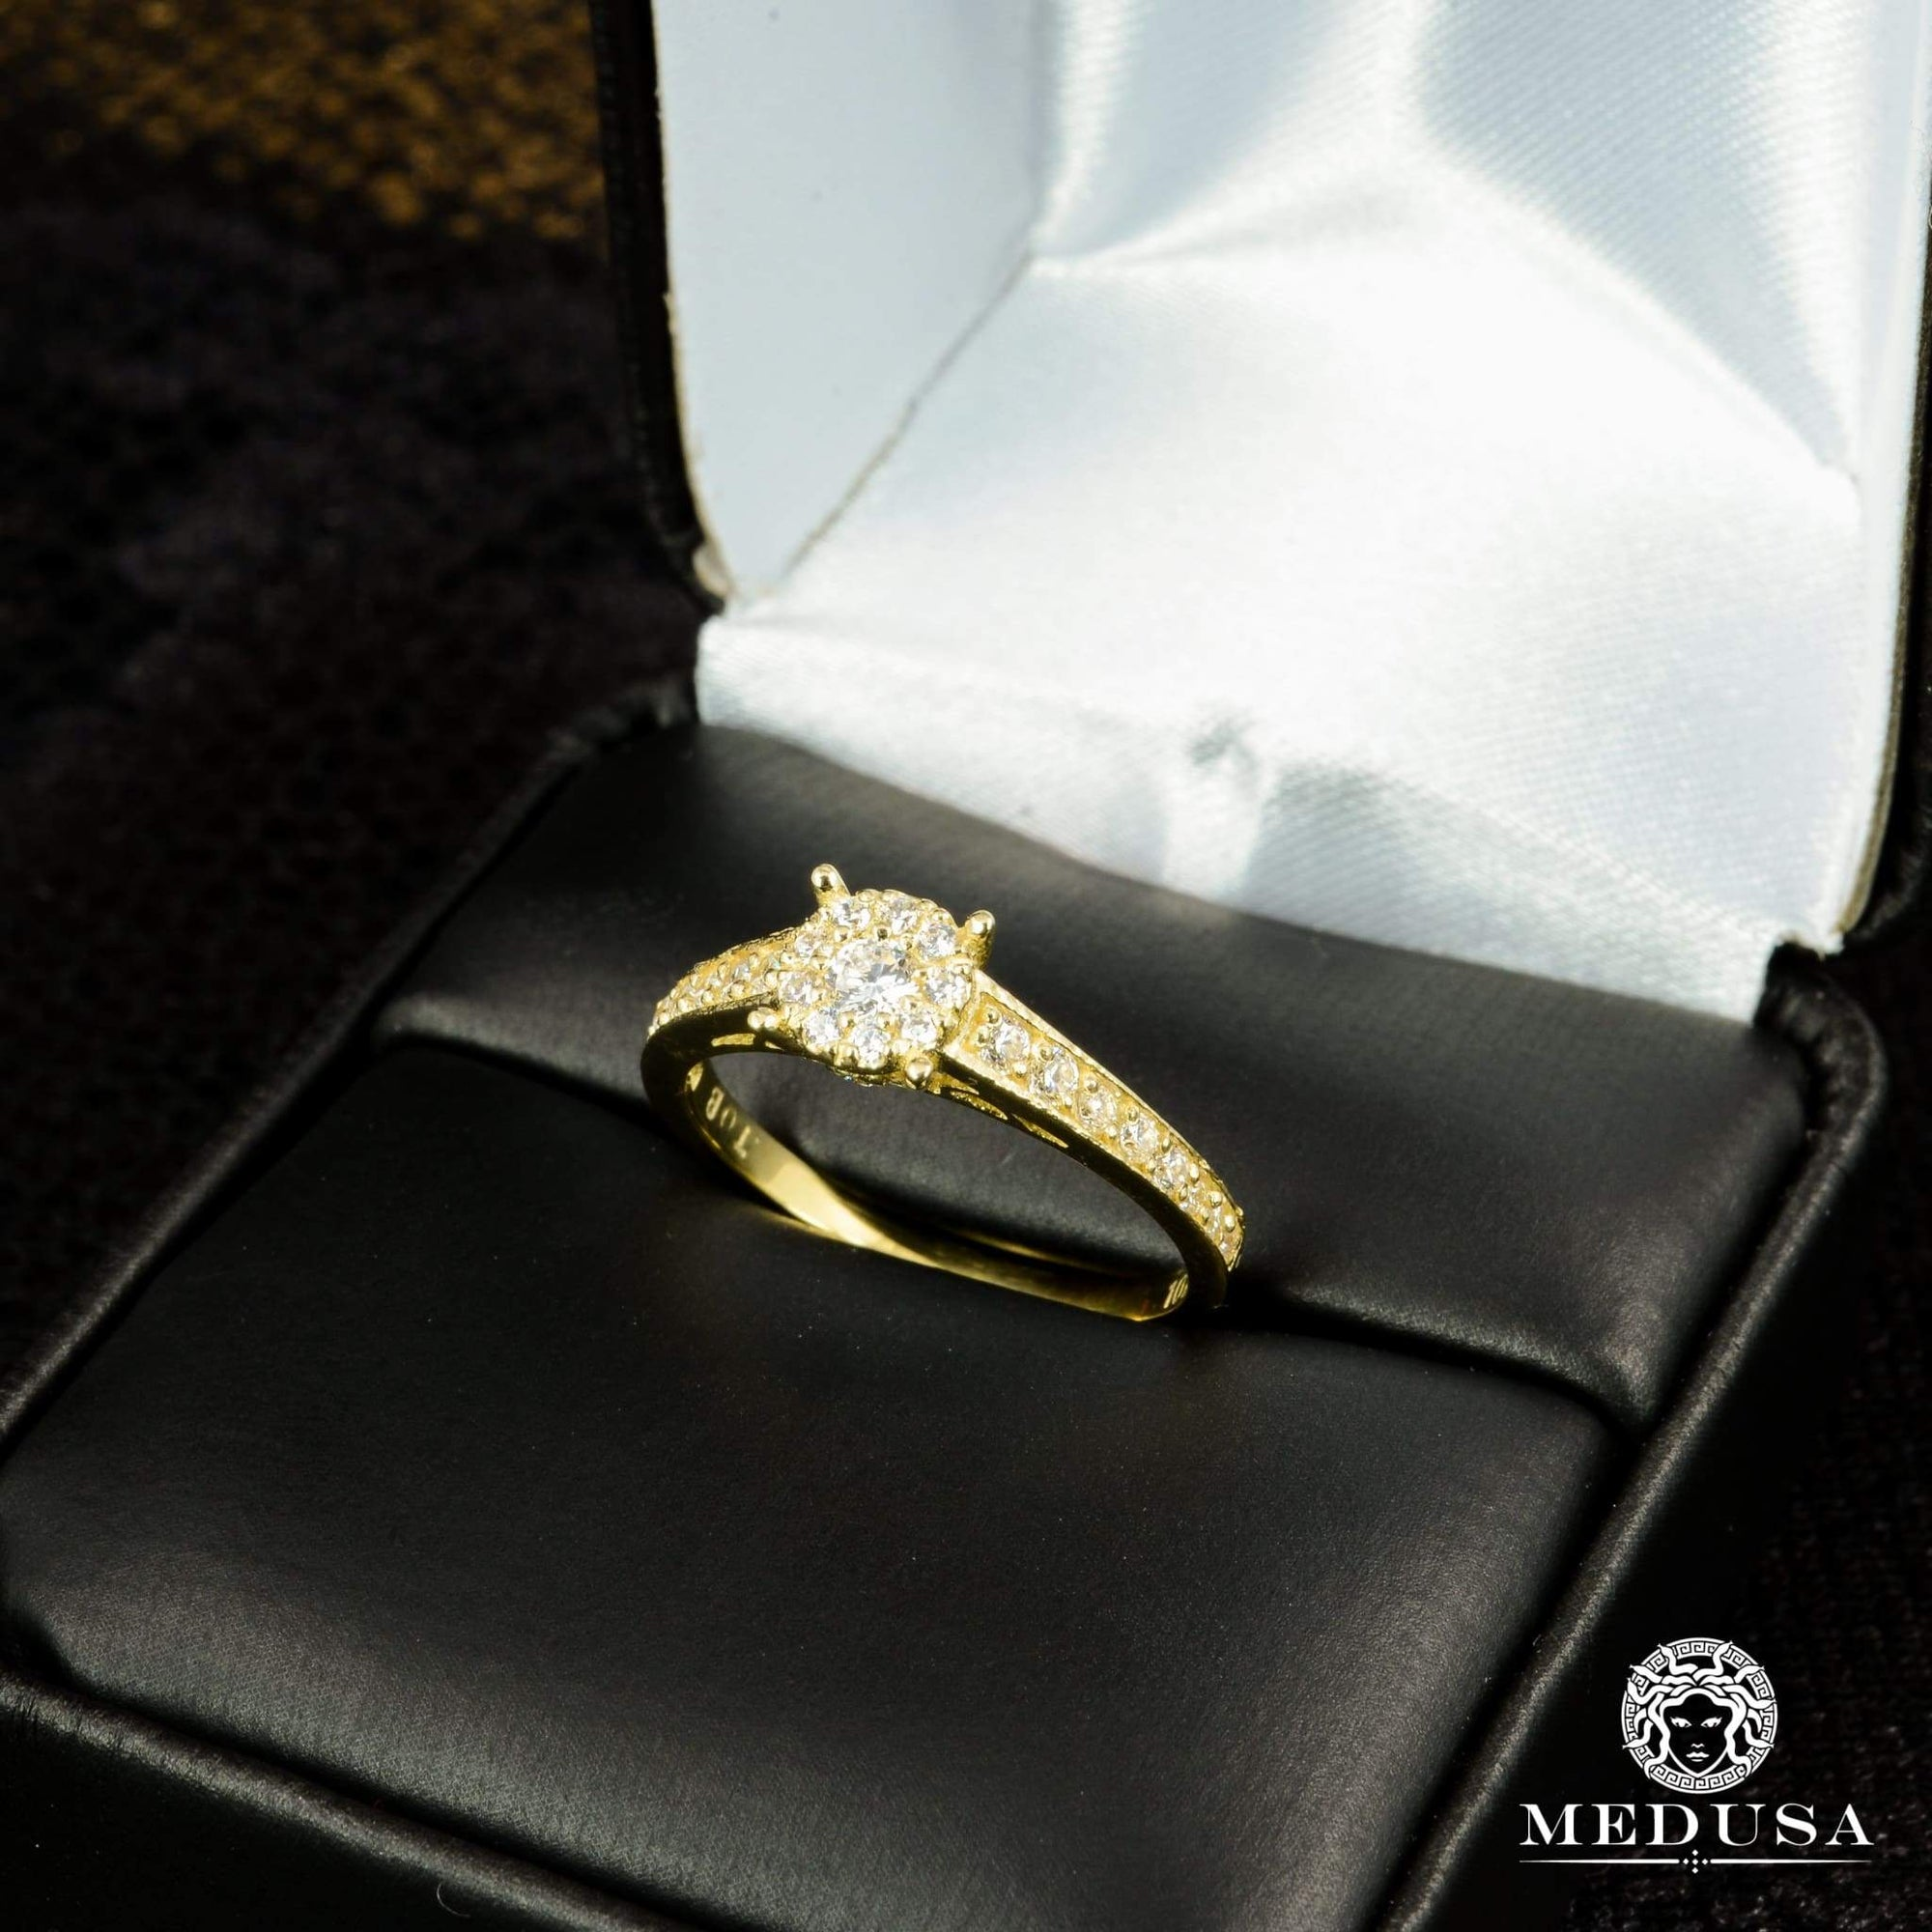 Bague à Diamants en Or 14K | Bague Fiançaille Solitaire F23 - MA0750